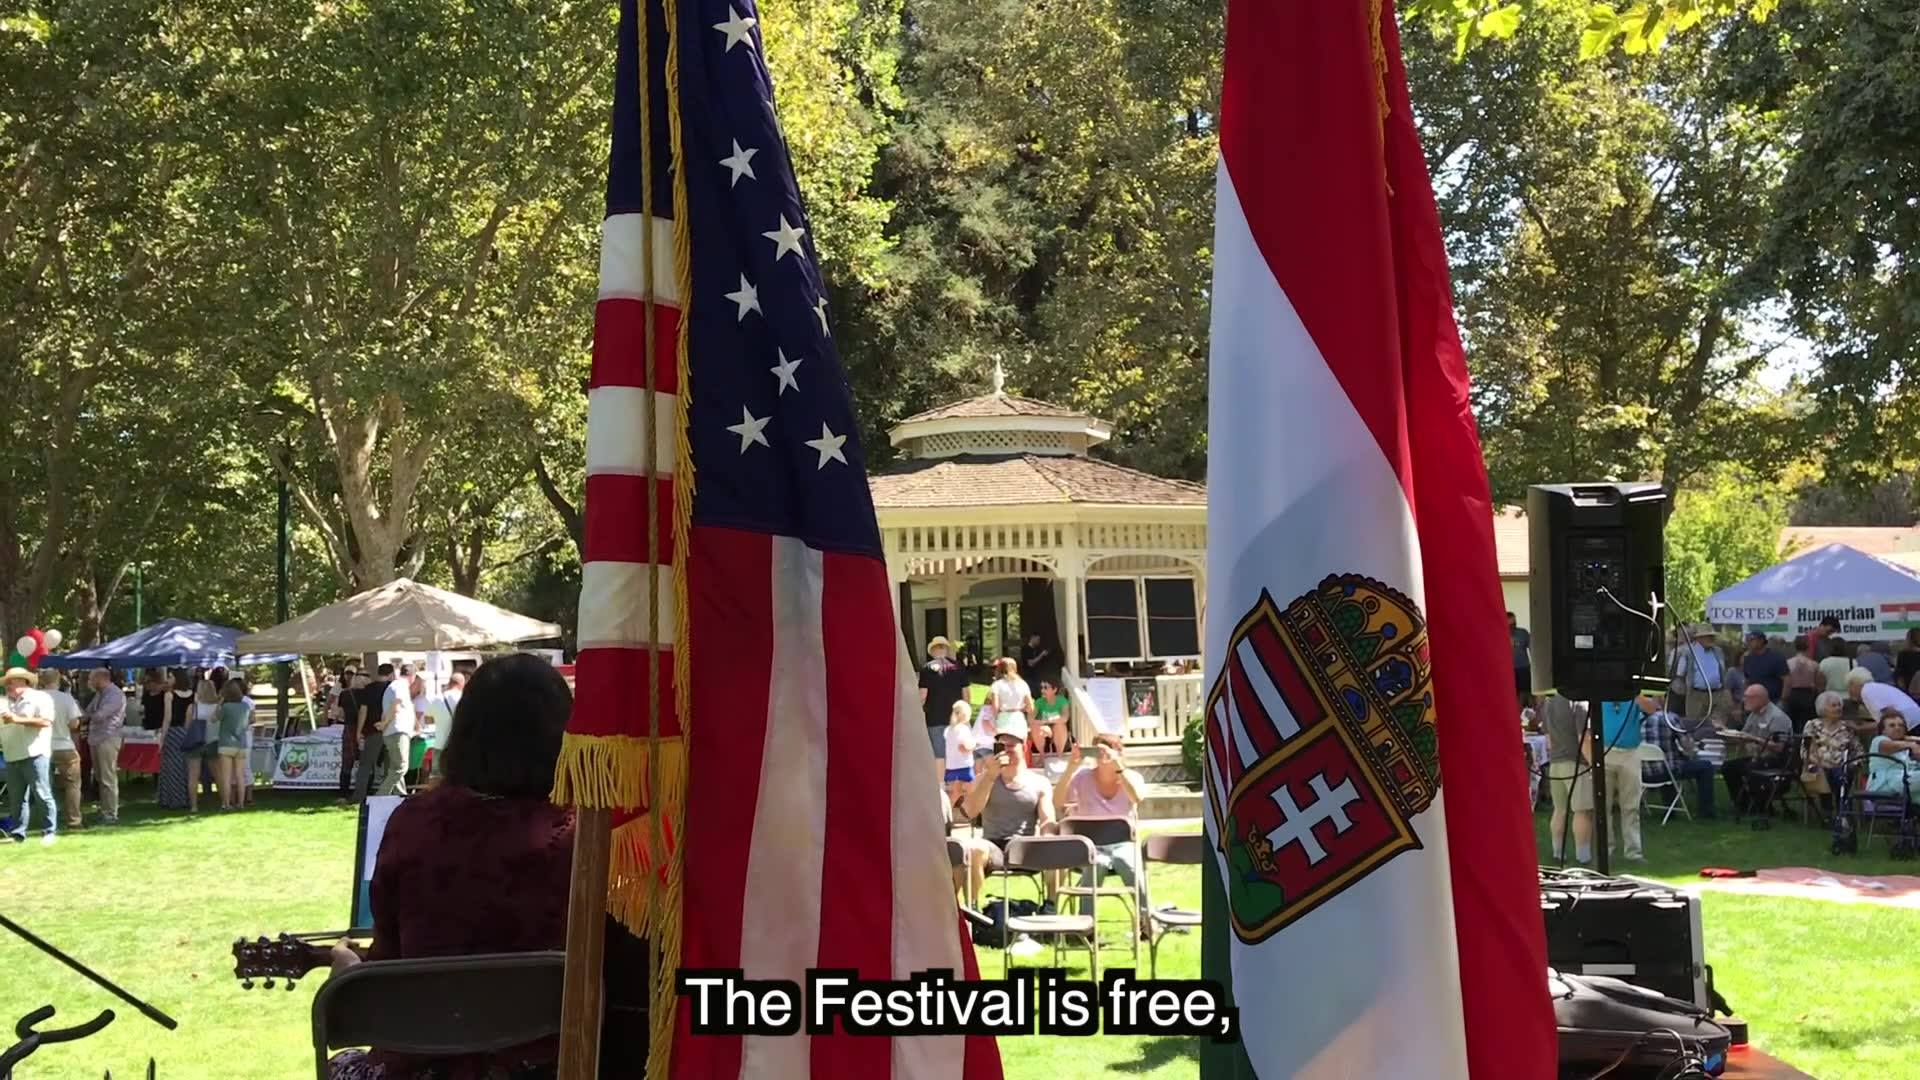 Second Hungarian Festival in Downtown Walnut Creek, CA